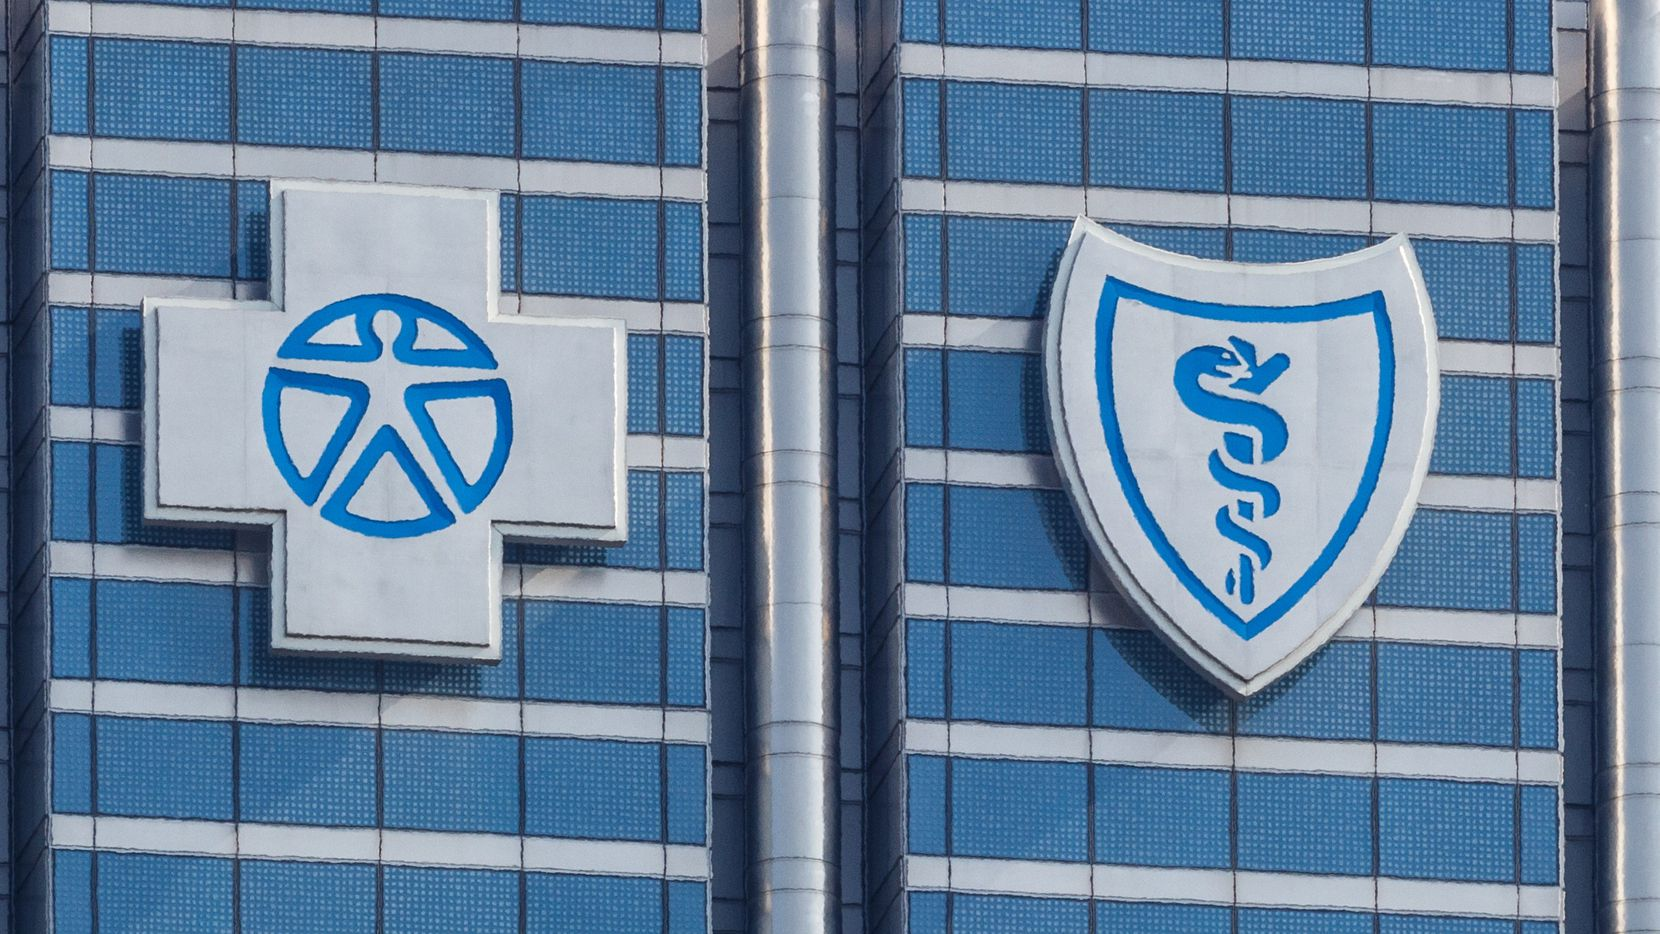 Health Care Service Corporation is a 16 million-member insurer that operates Blue Cross Blue Shield health plans in Texas, Illinois, Montana, New Mexico and Oklahoma.